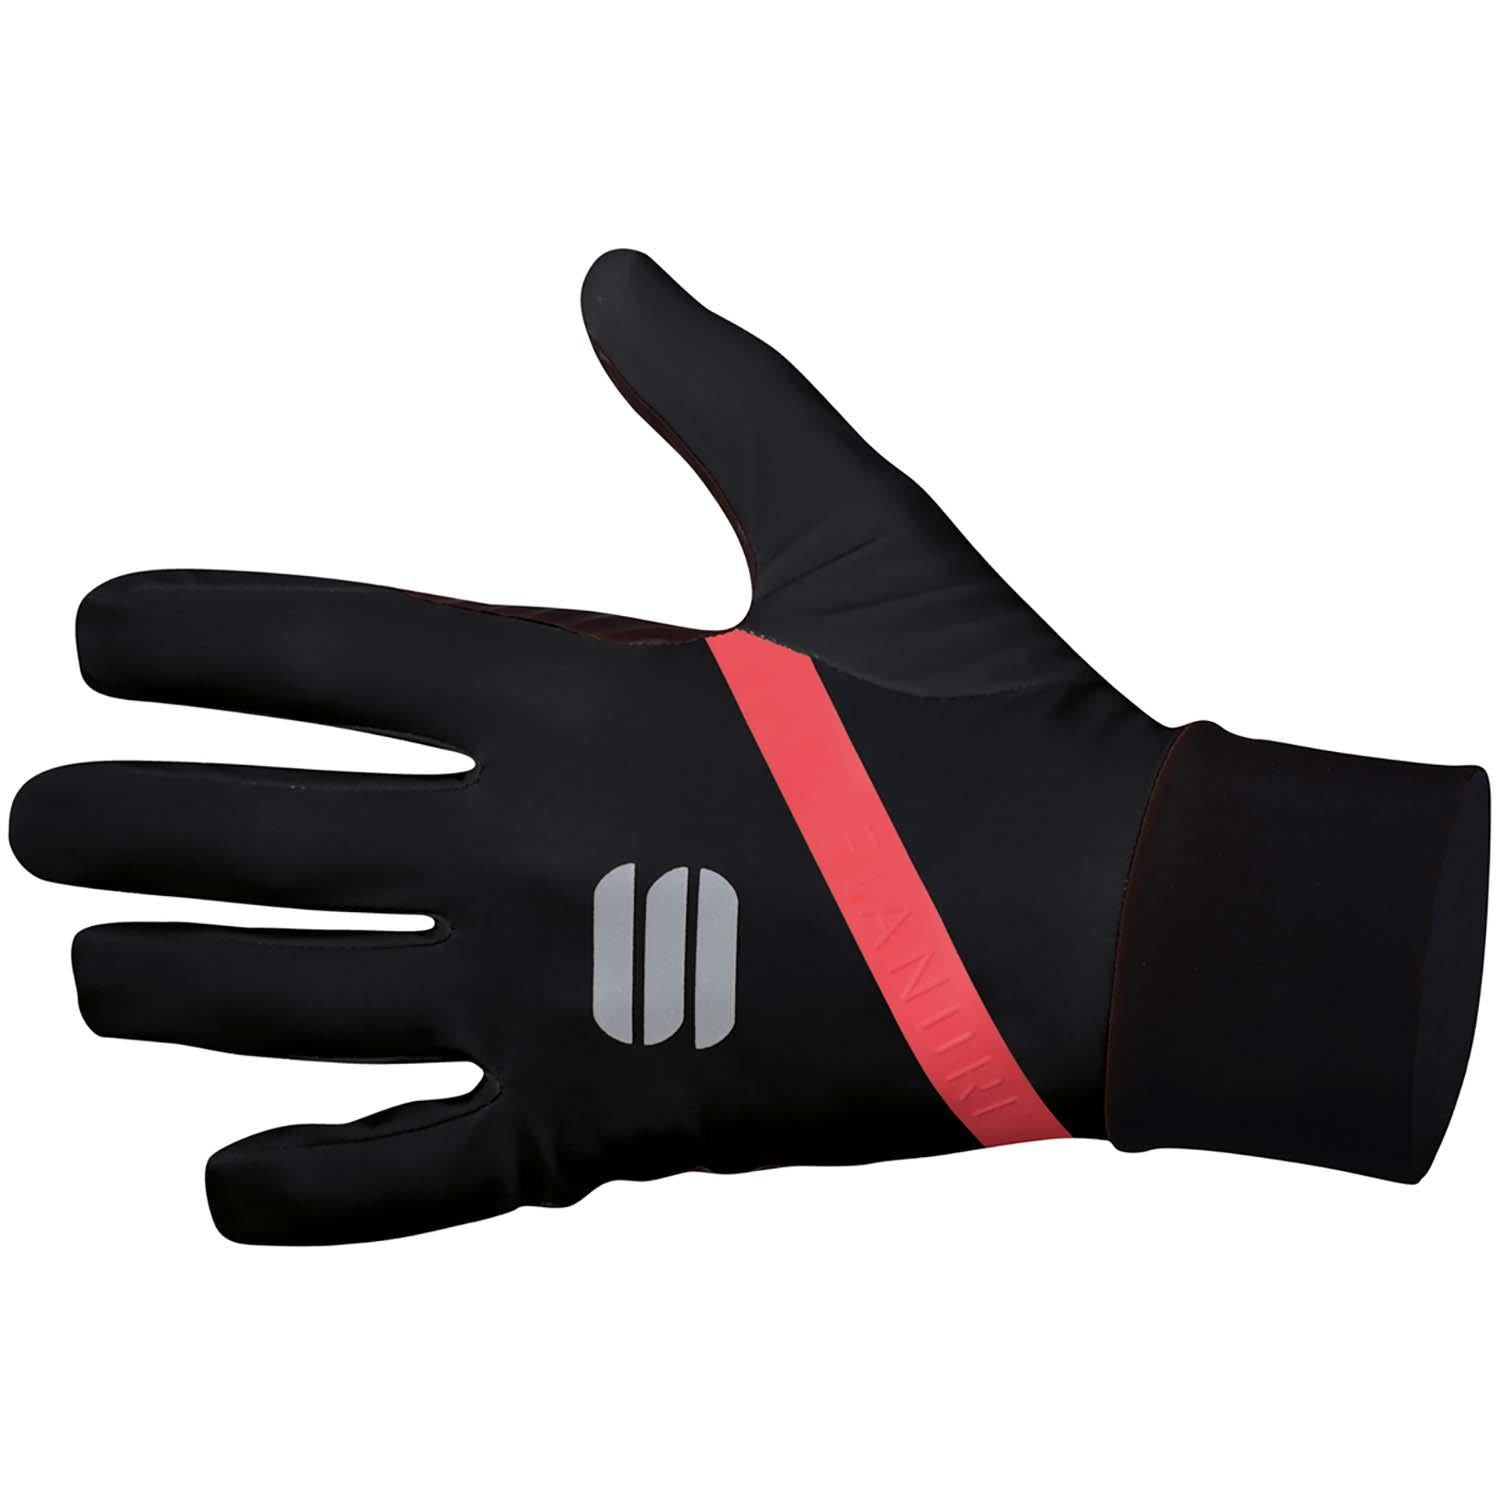 Sportful-Sportful Fiandre Light Gloves-Black-XS-SF195460021-saddleback-elite-performance-cycling